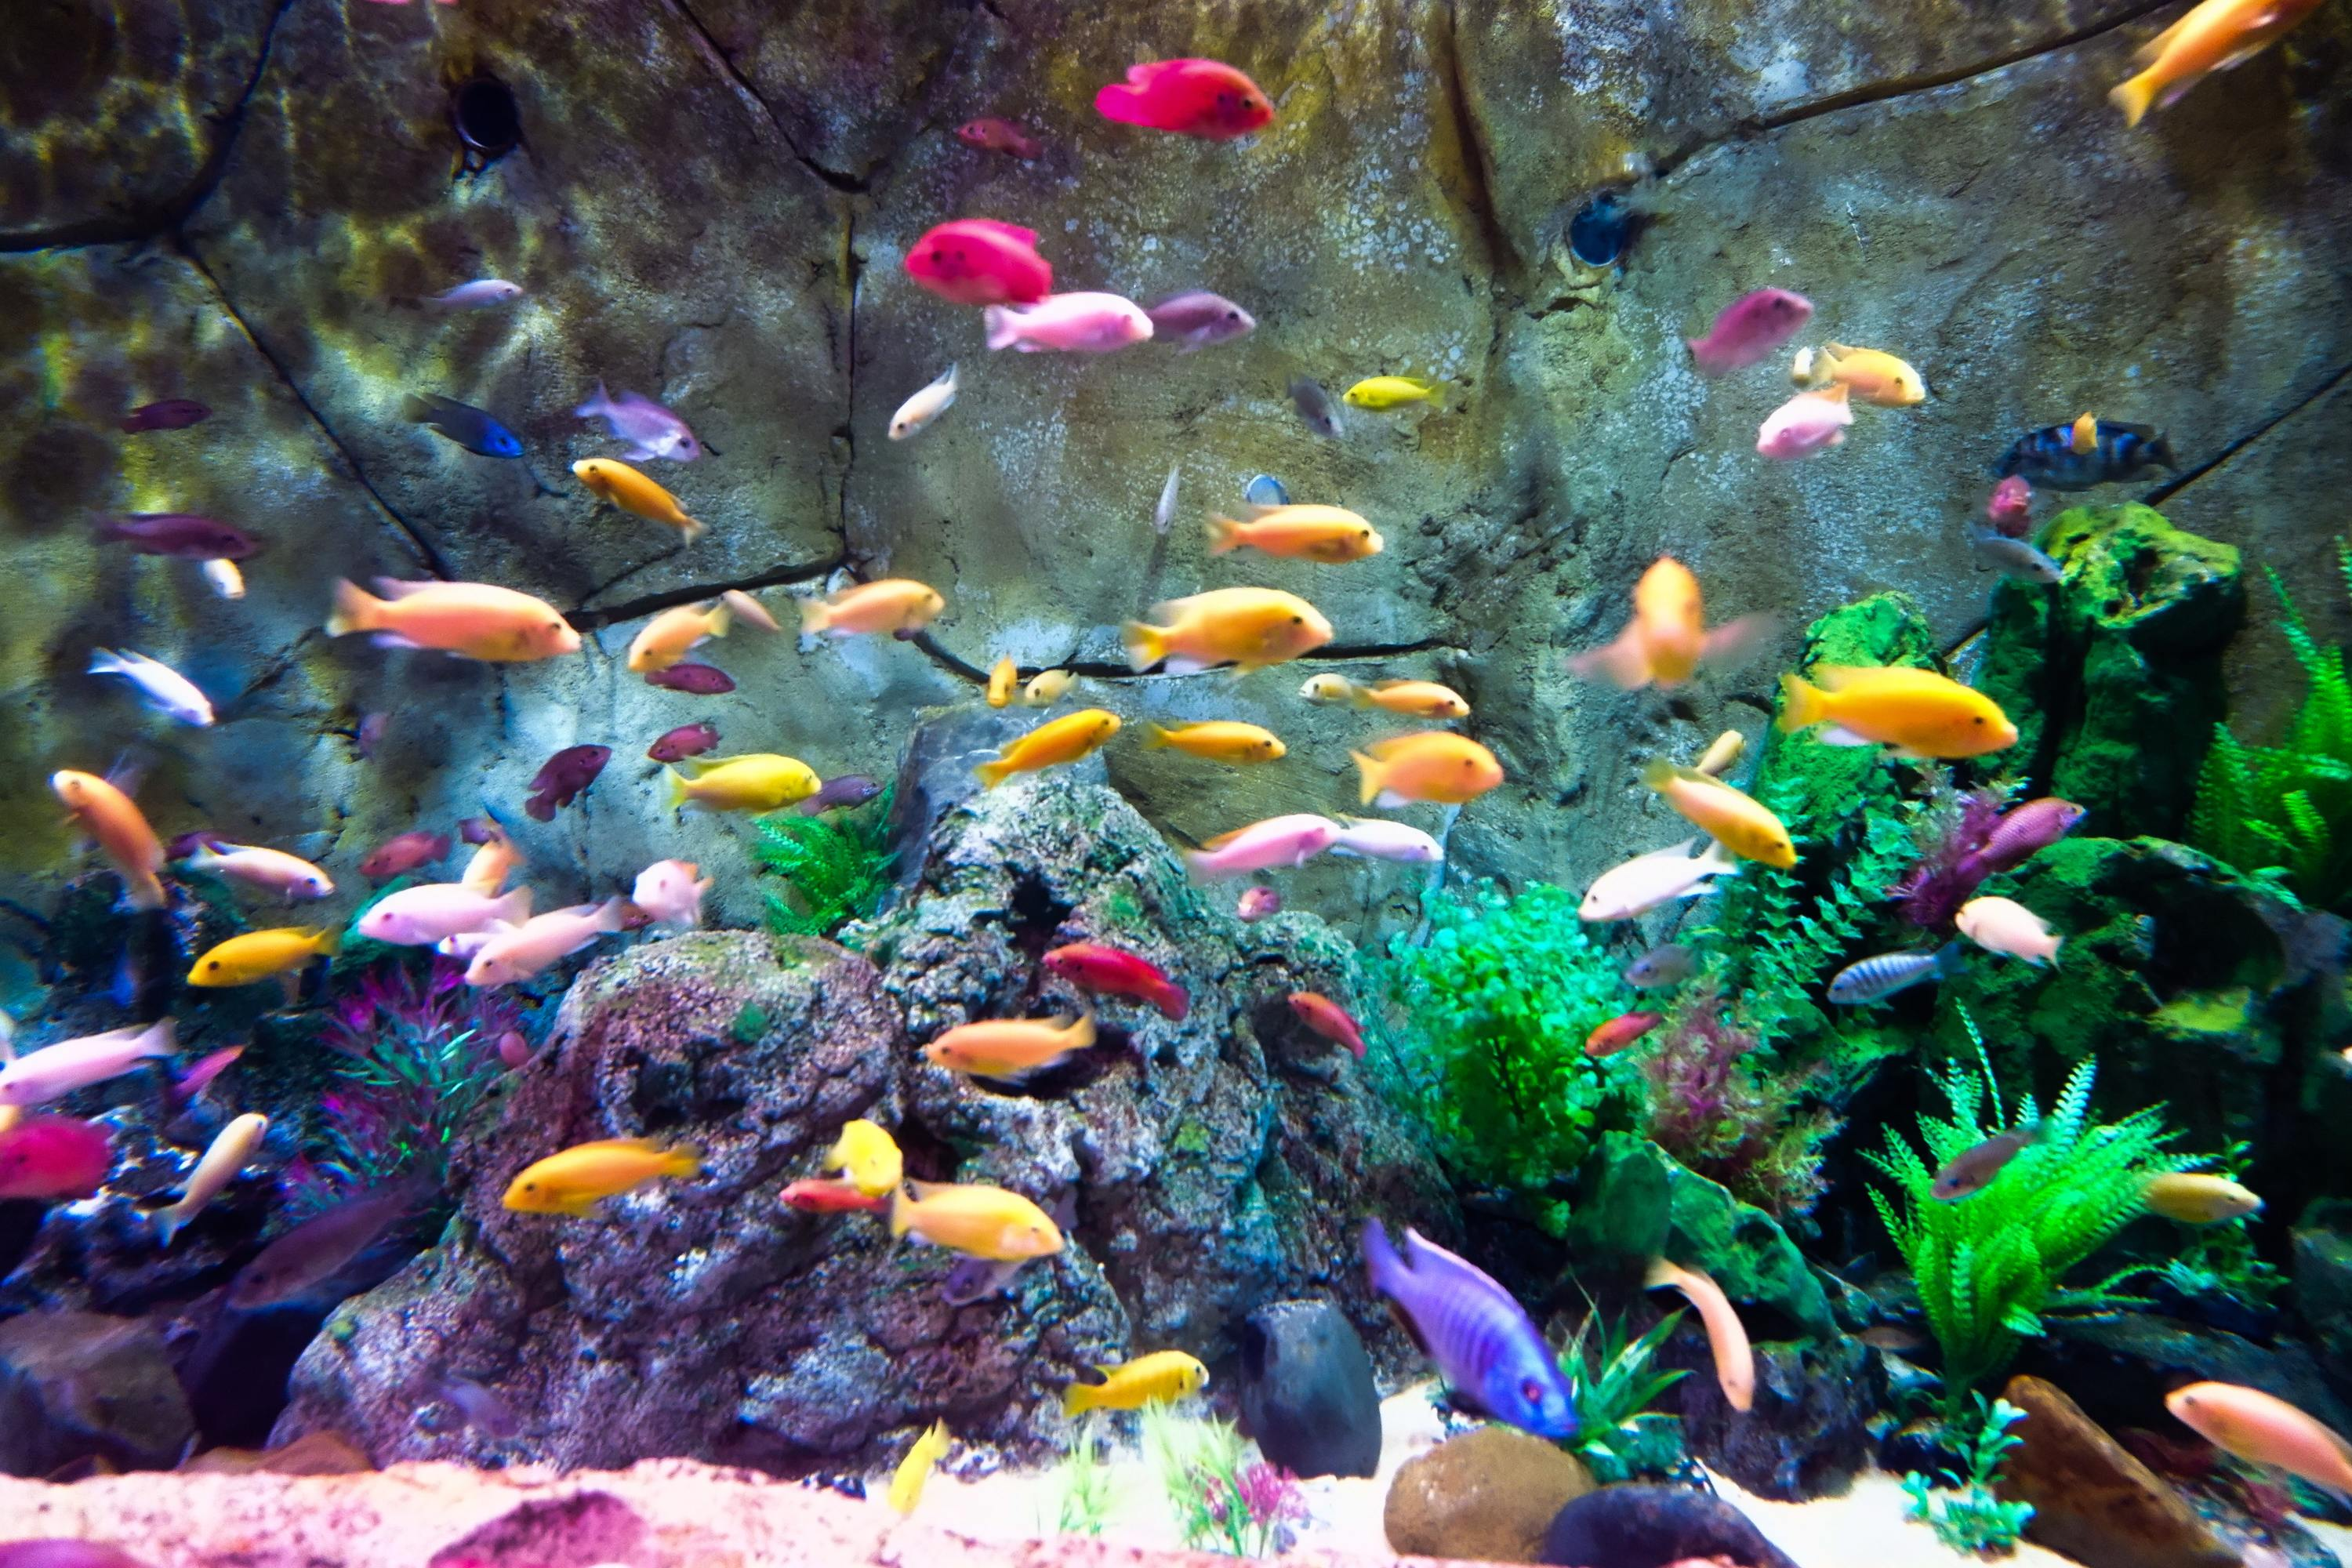 This aquarium's live cam is relaxing and mesmerizing